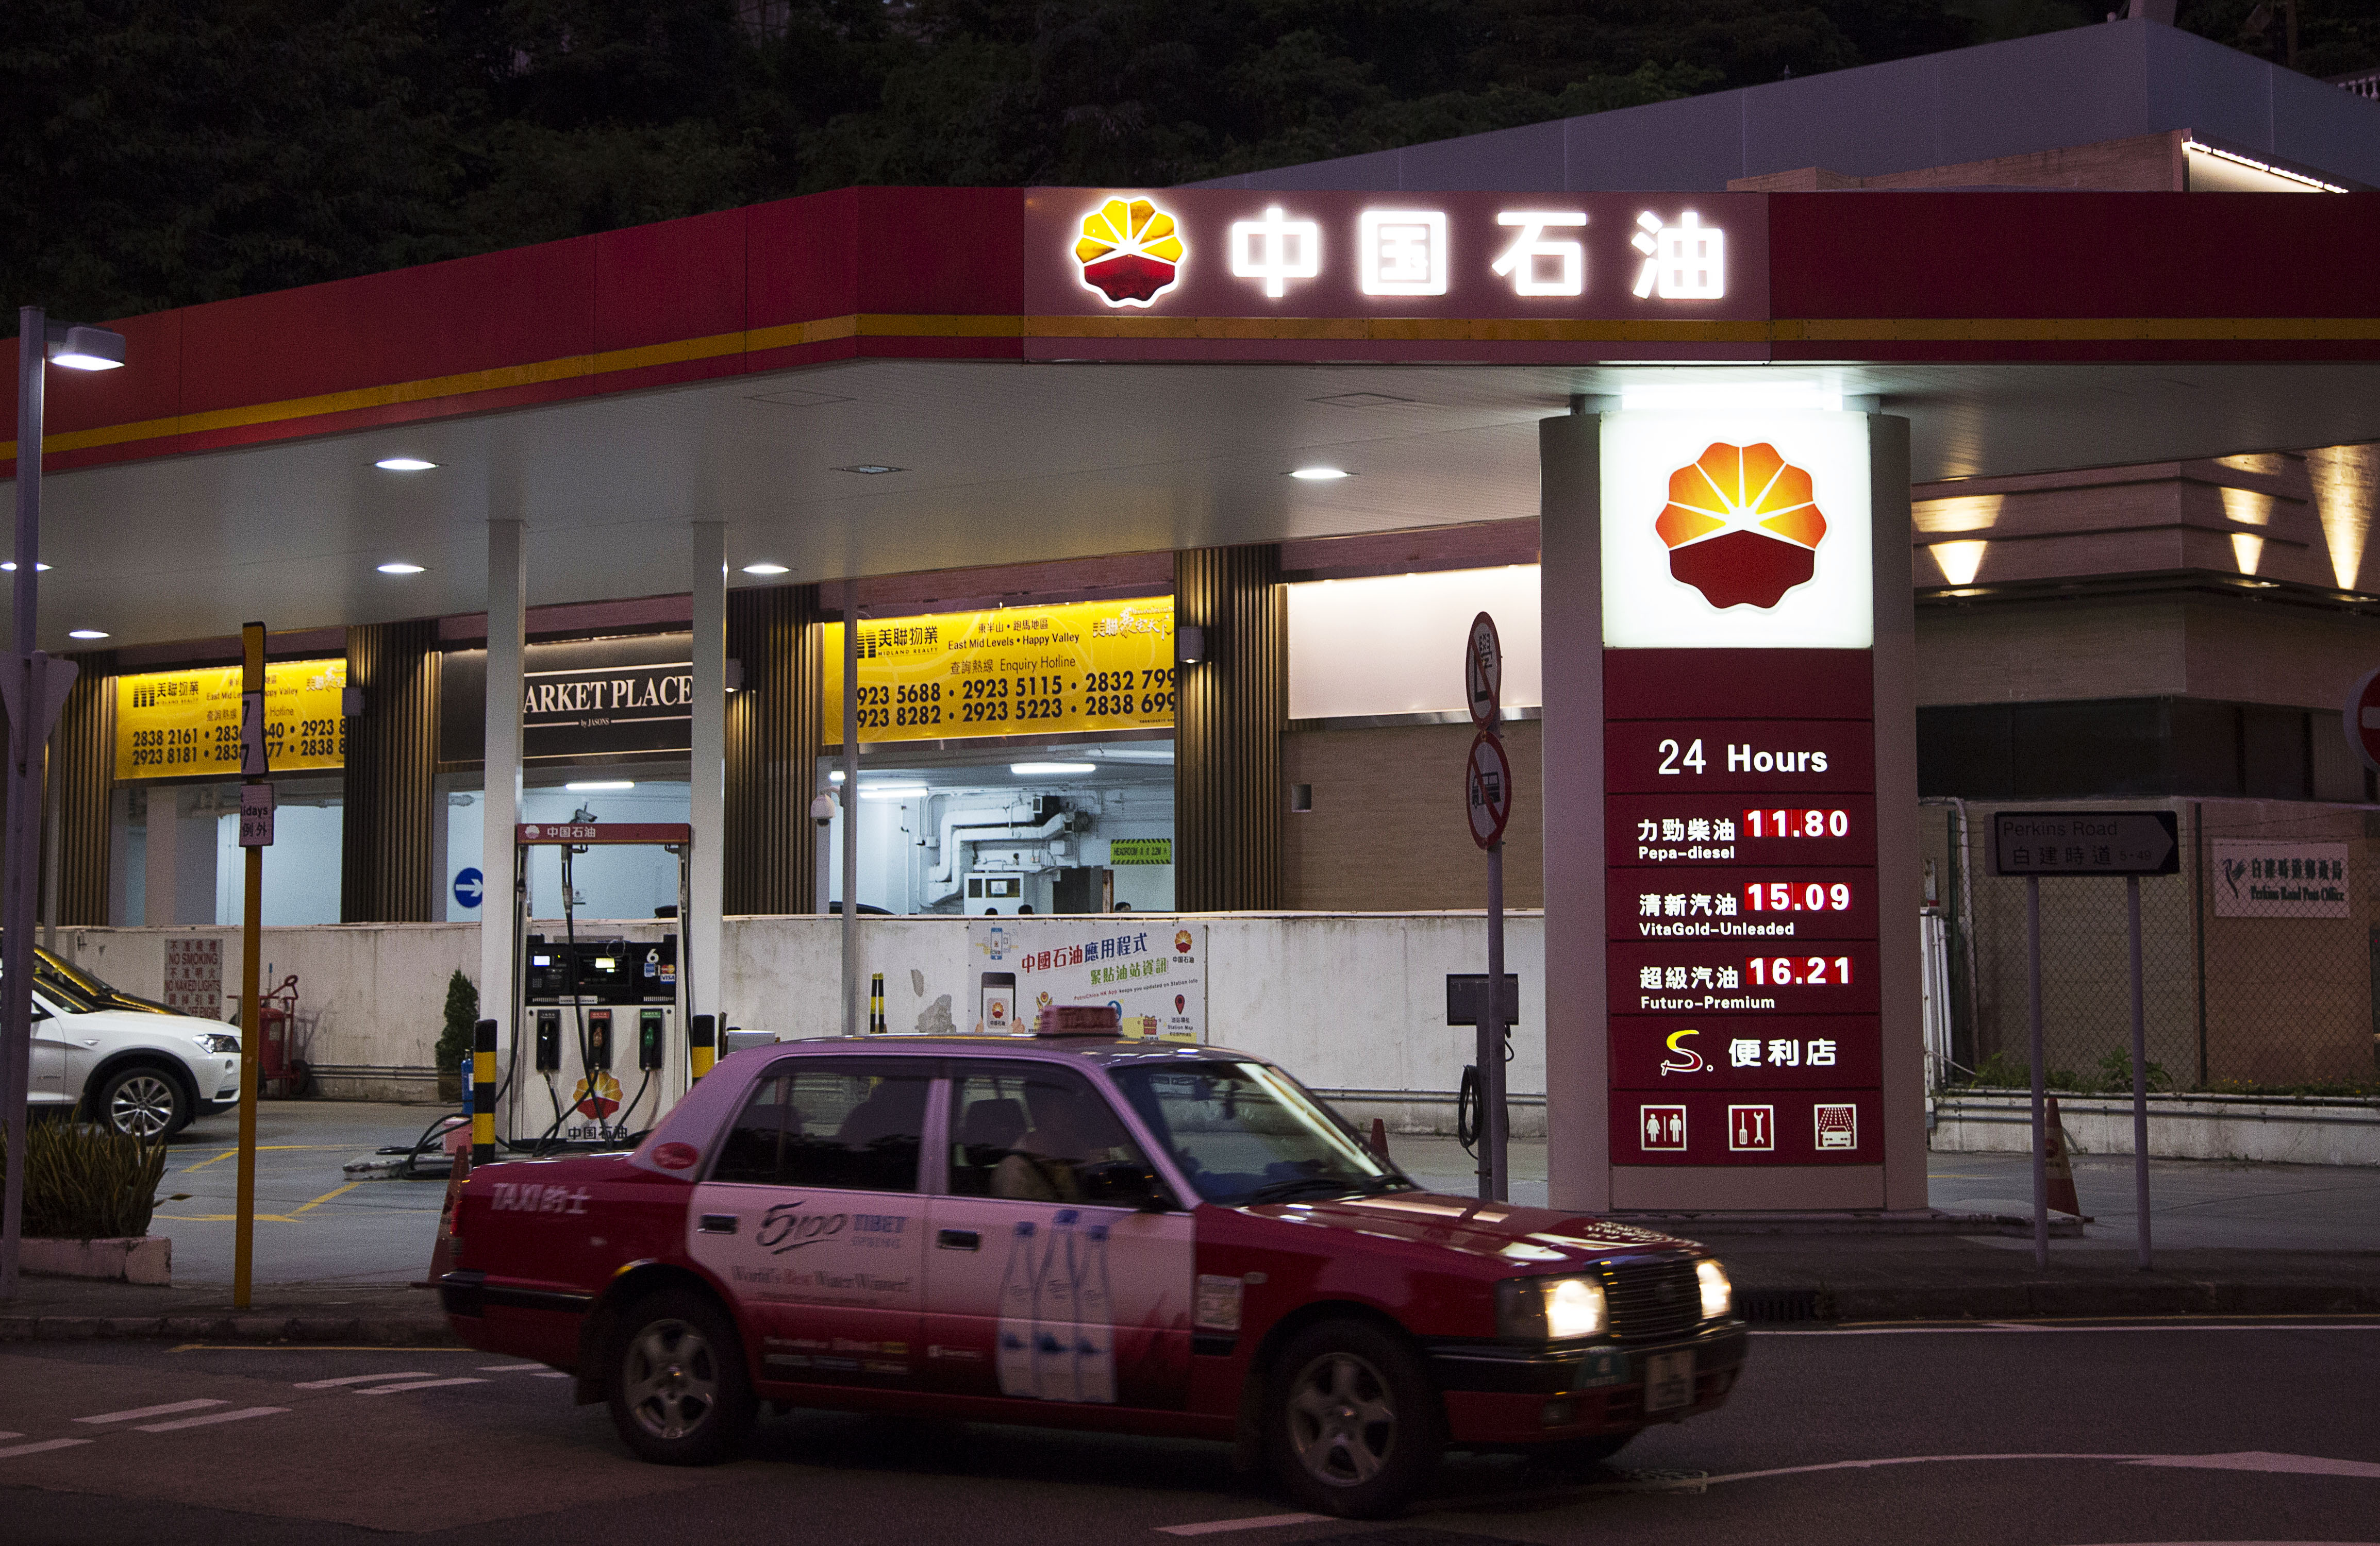 Views Of PetroChina Co. and China Petroleum & Chemical Corporation (Sinopec) Gas Stations Ahead Of Earnings